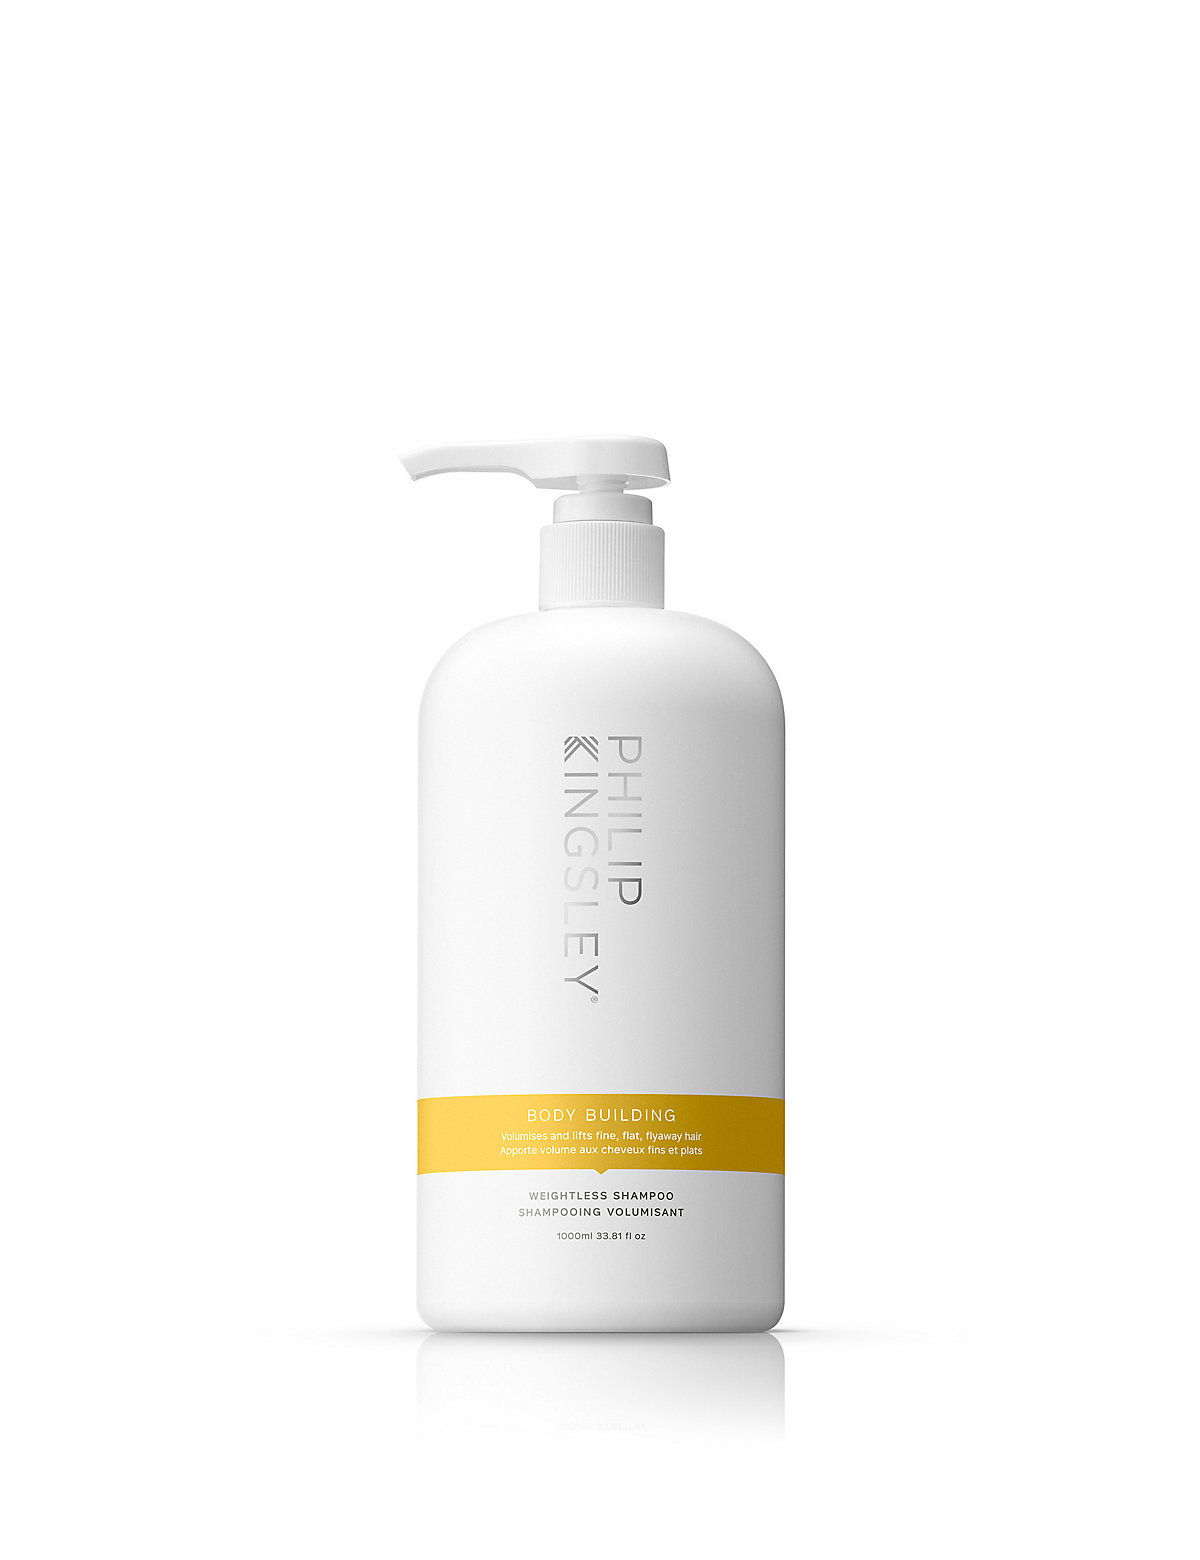 Philip Kingsley 1 Litre Body Building Shampoo - *Save 40% per ml